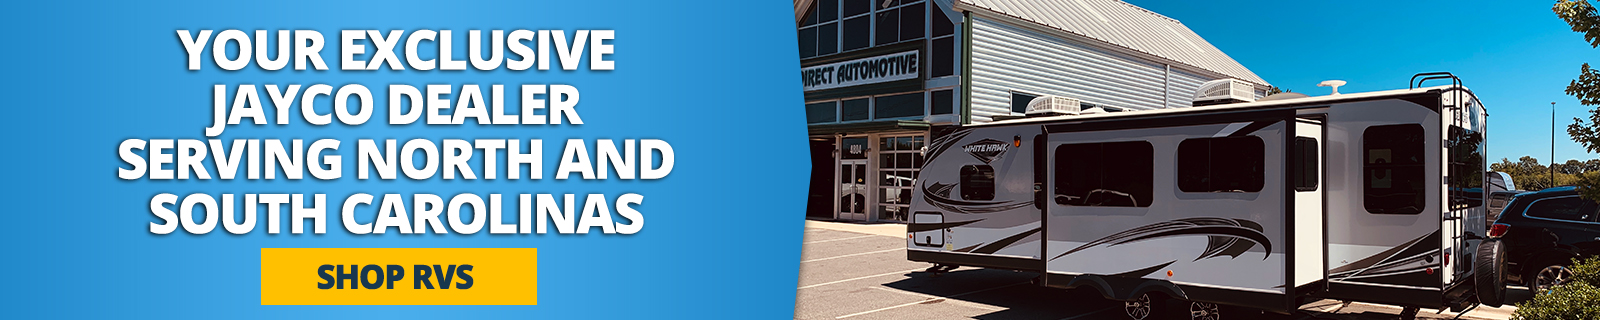 Your Jayco Dealer serving north and south carolinas